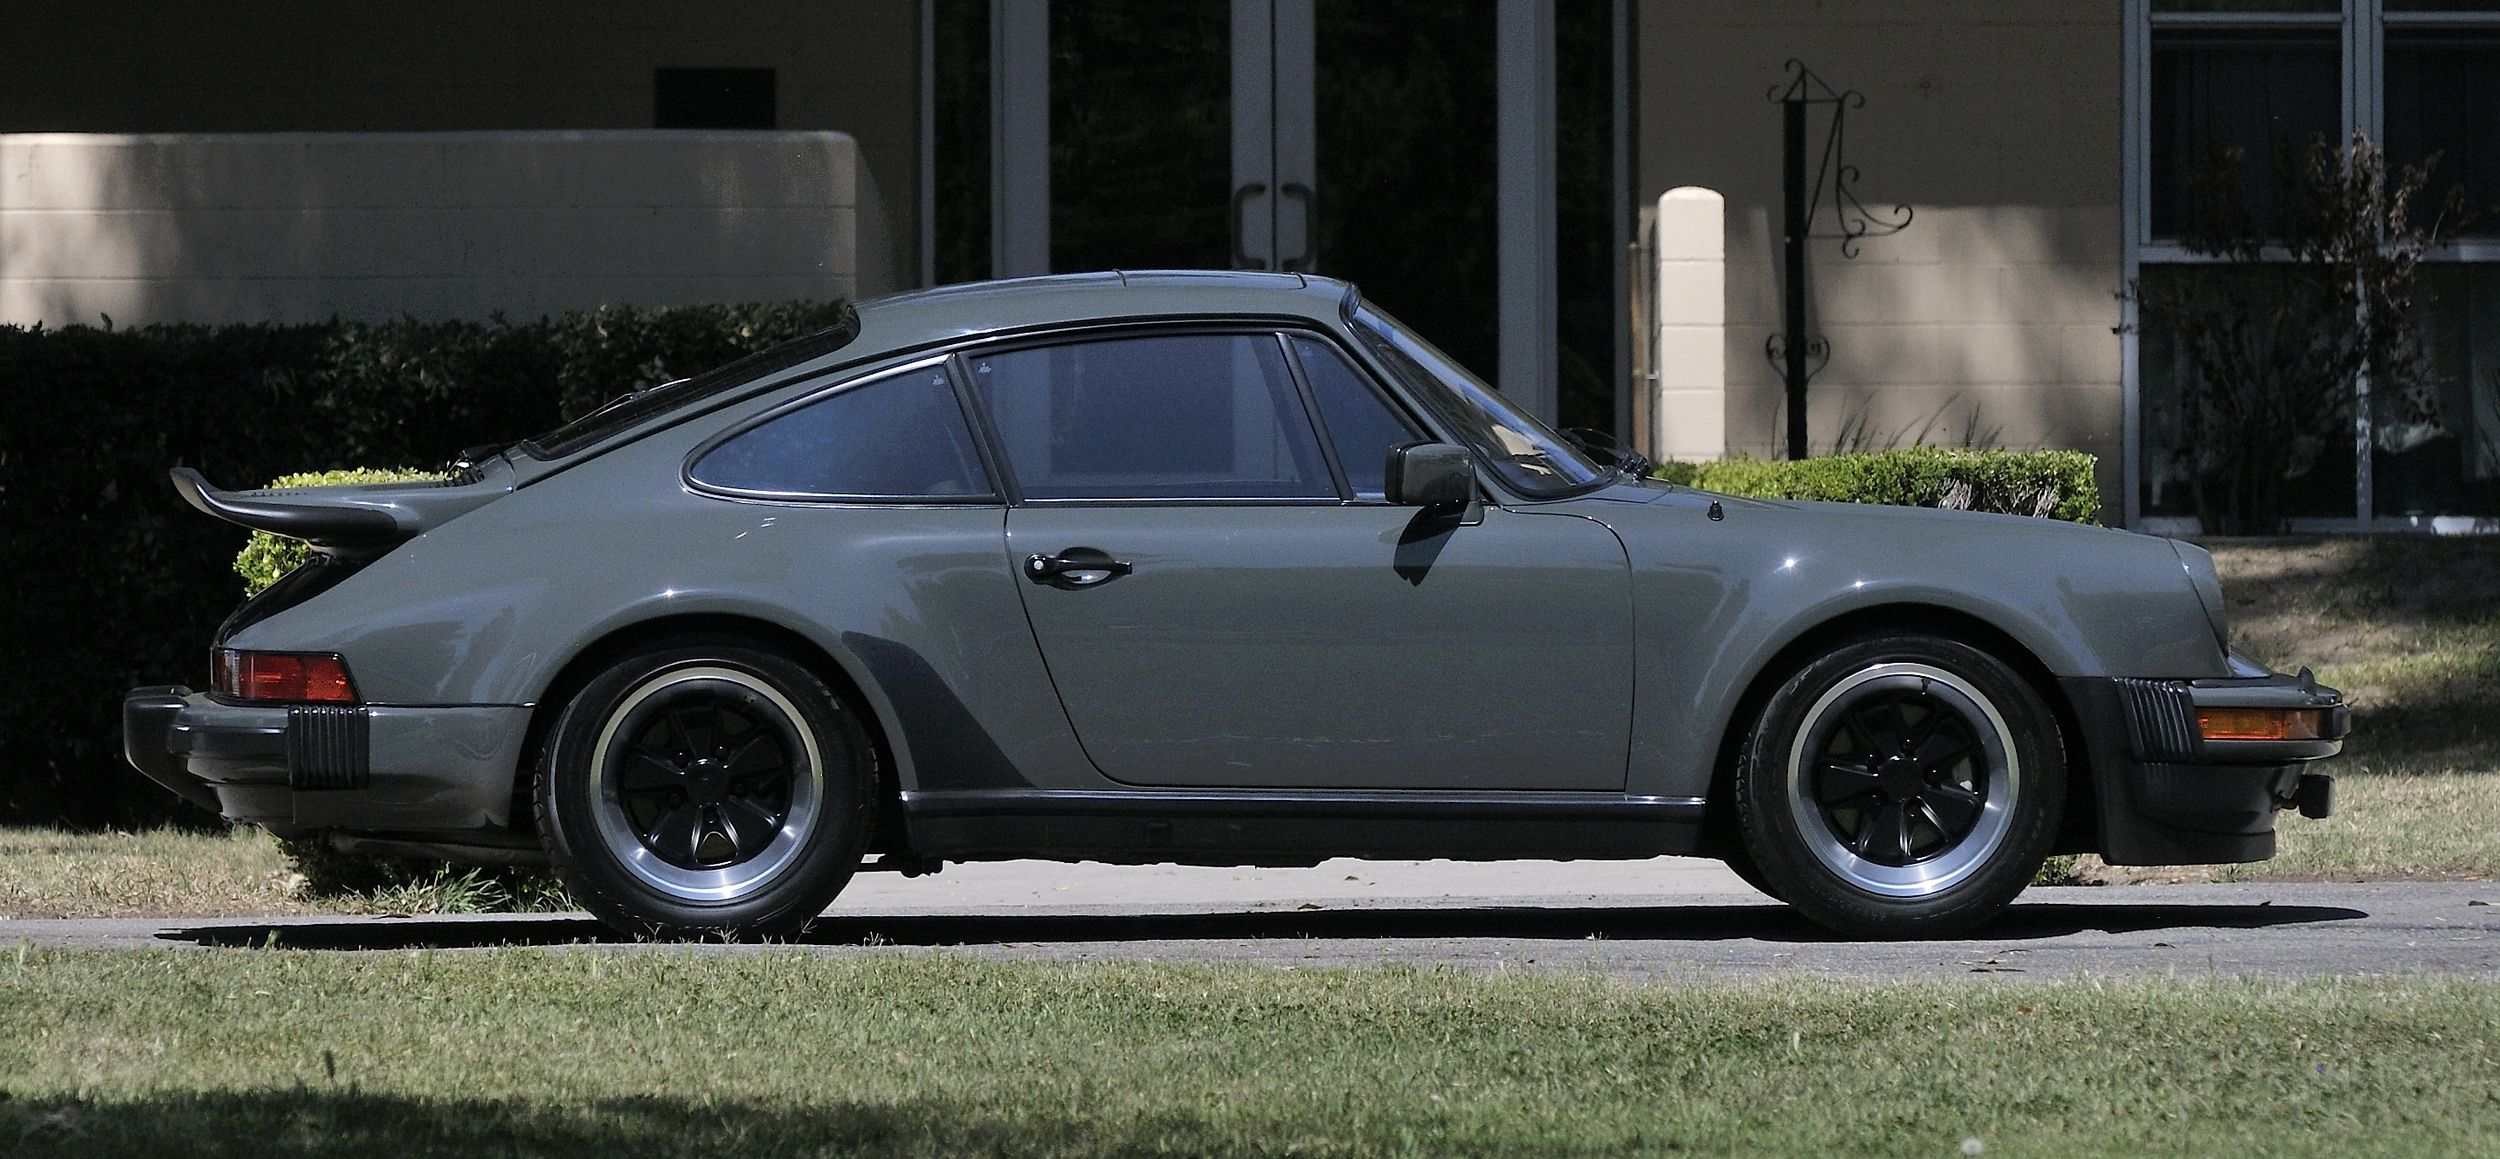 1976 Porsche 911 Turbo (930) Full hd wallpapers